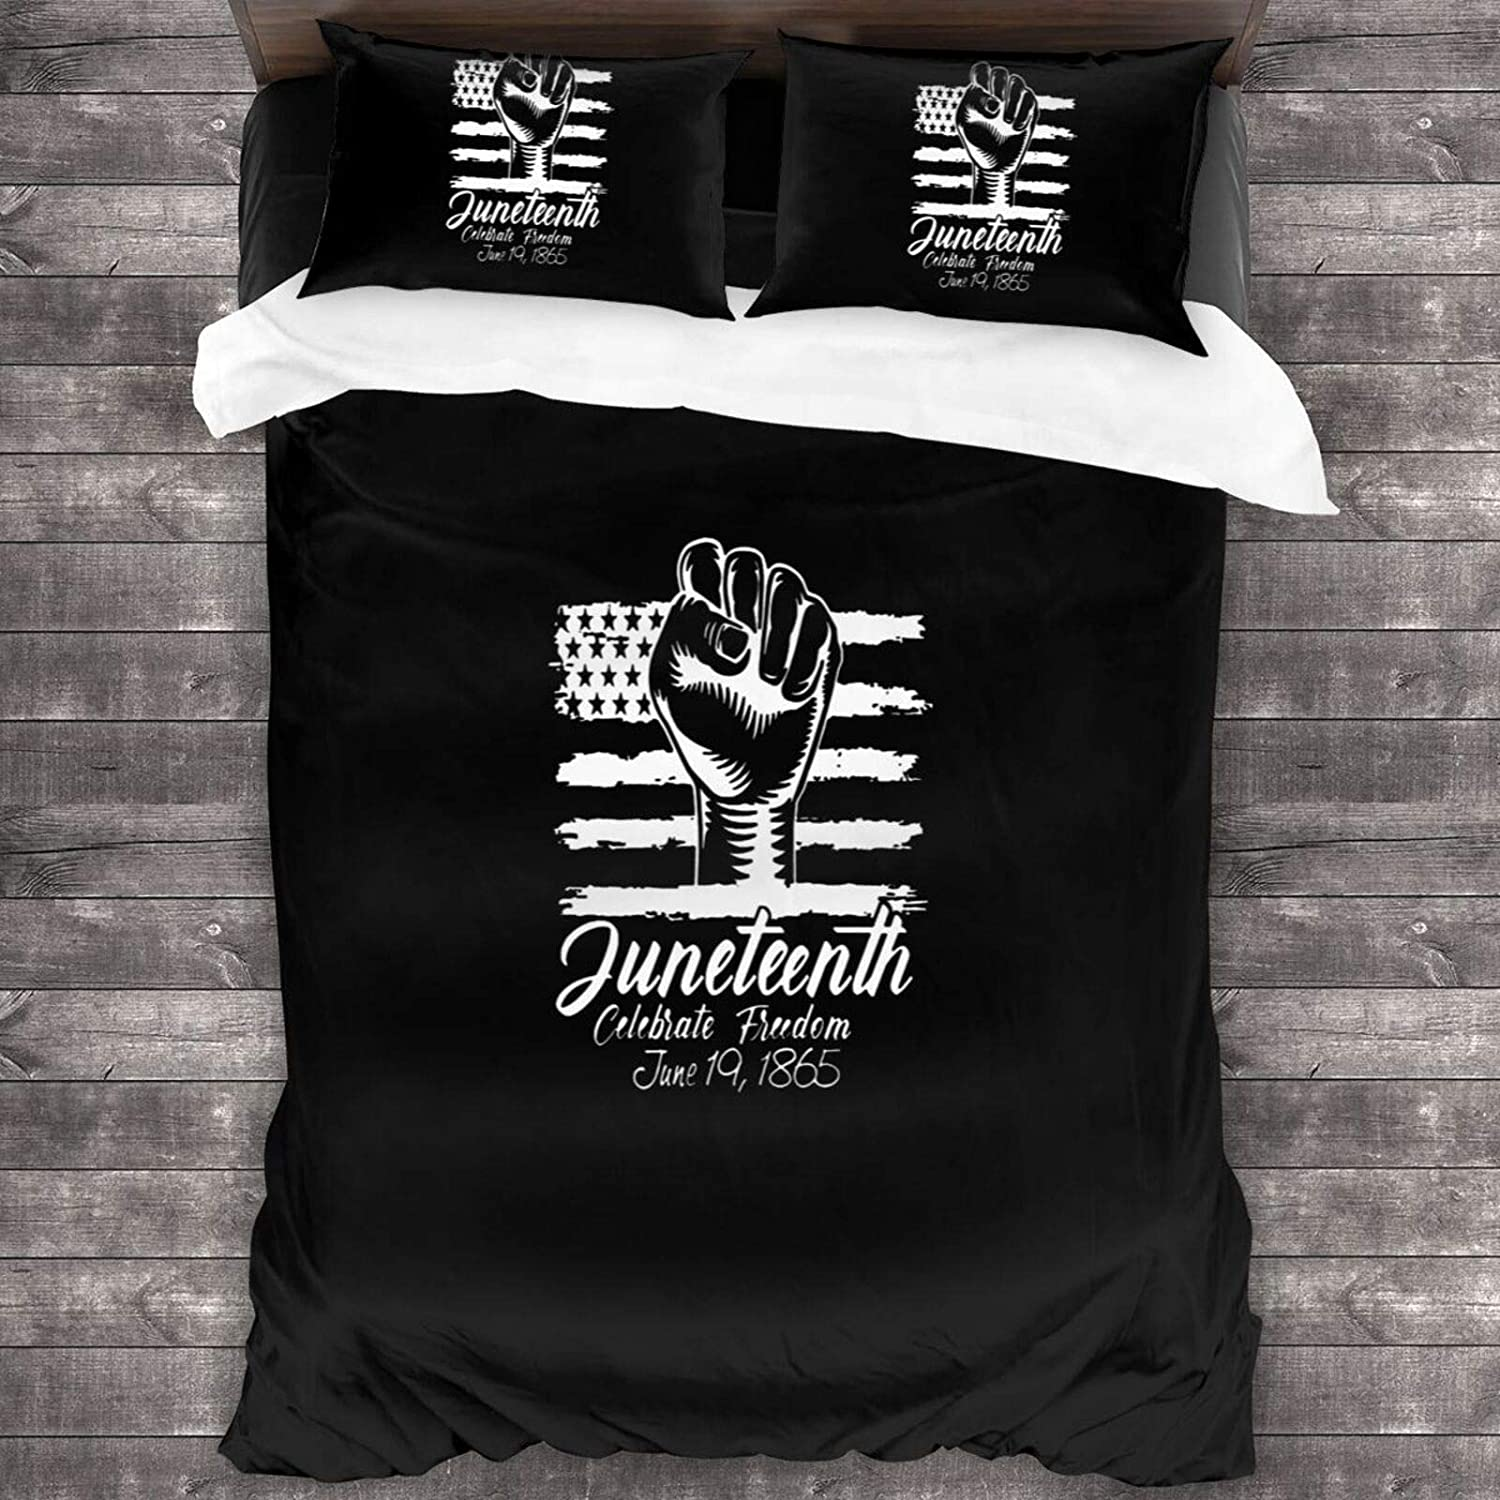 DSFSDF Juneteenth 1865 Africa Map Fist 1 Classics 3 Pieces Bedding Set Duvet Cover for Full Twin Size Bed Ultra Soft Breathable for Bedroom 2 Piece Pillow Cover and Duvet Cover